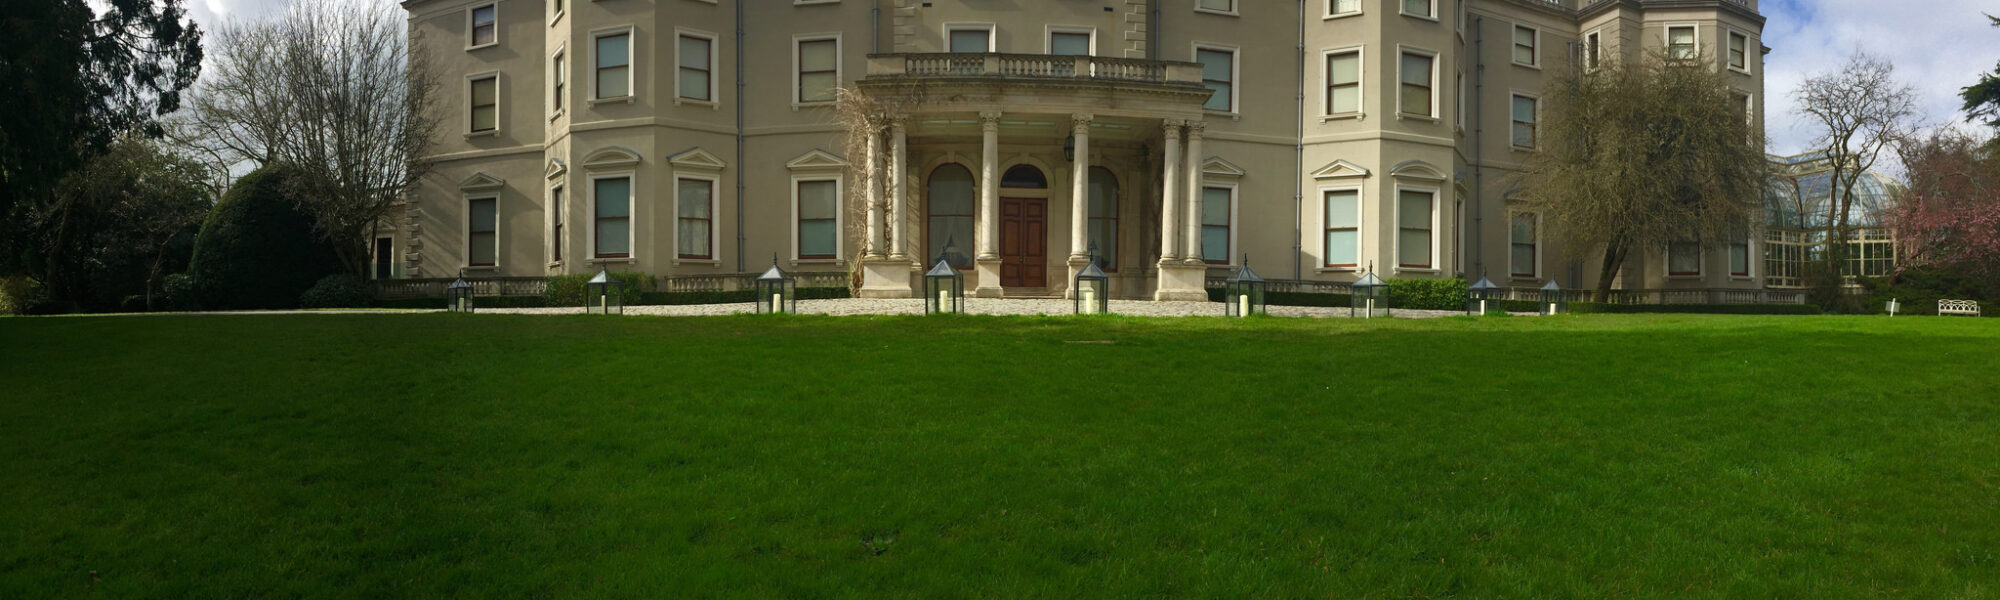 La Farmleigh house - Greg Clarke - cc